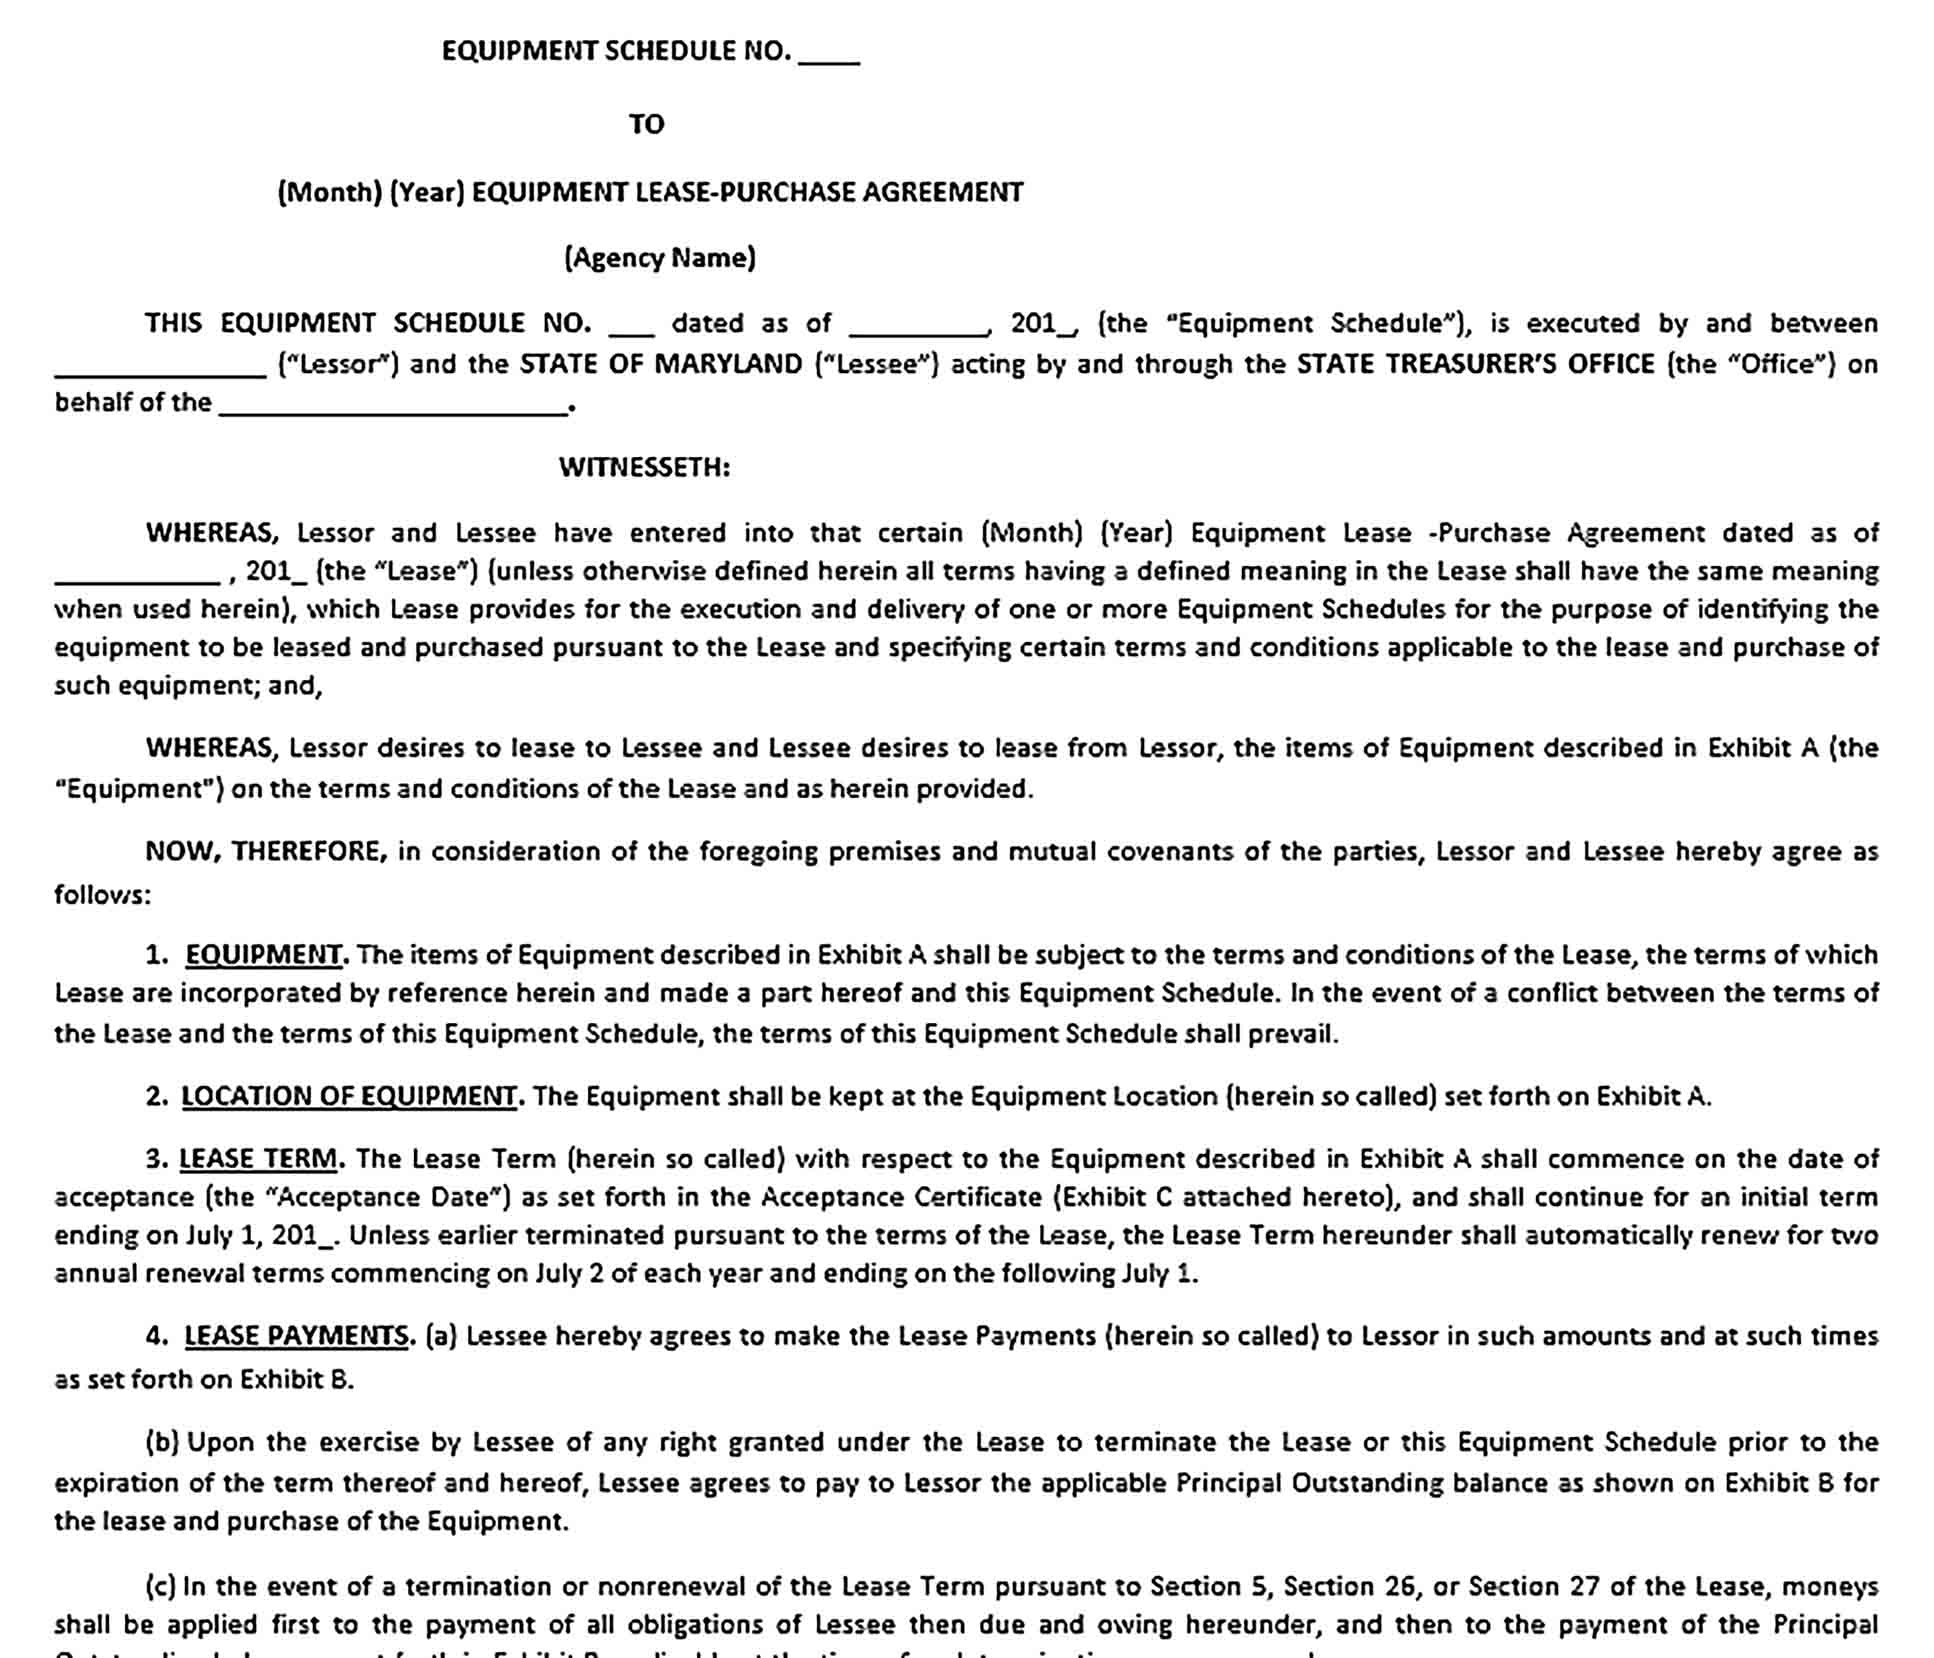 Sample Equipment Lease Purchase Agreement